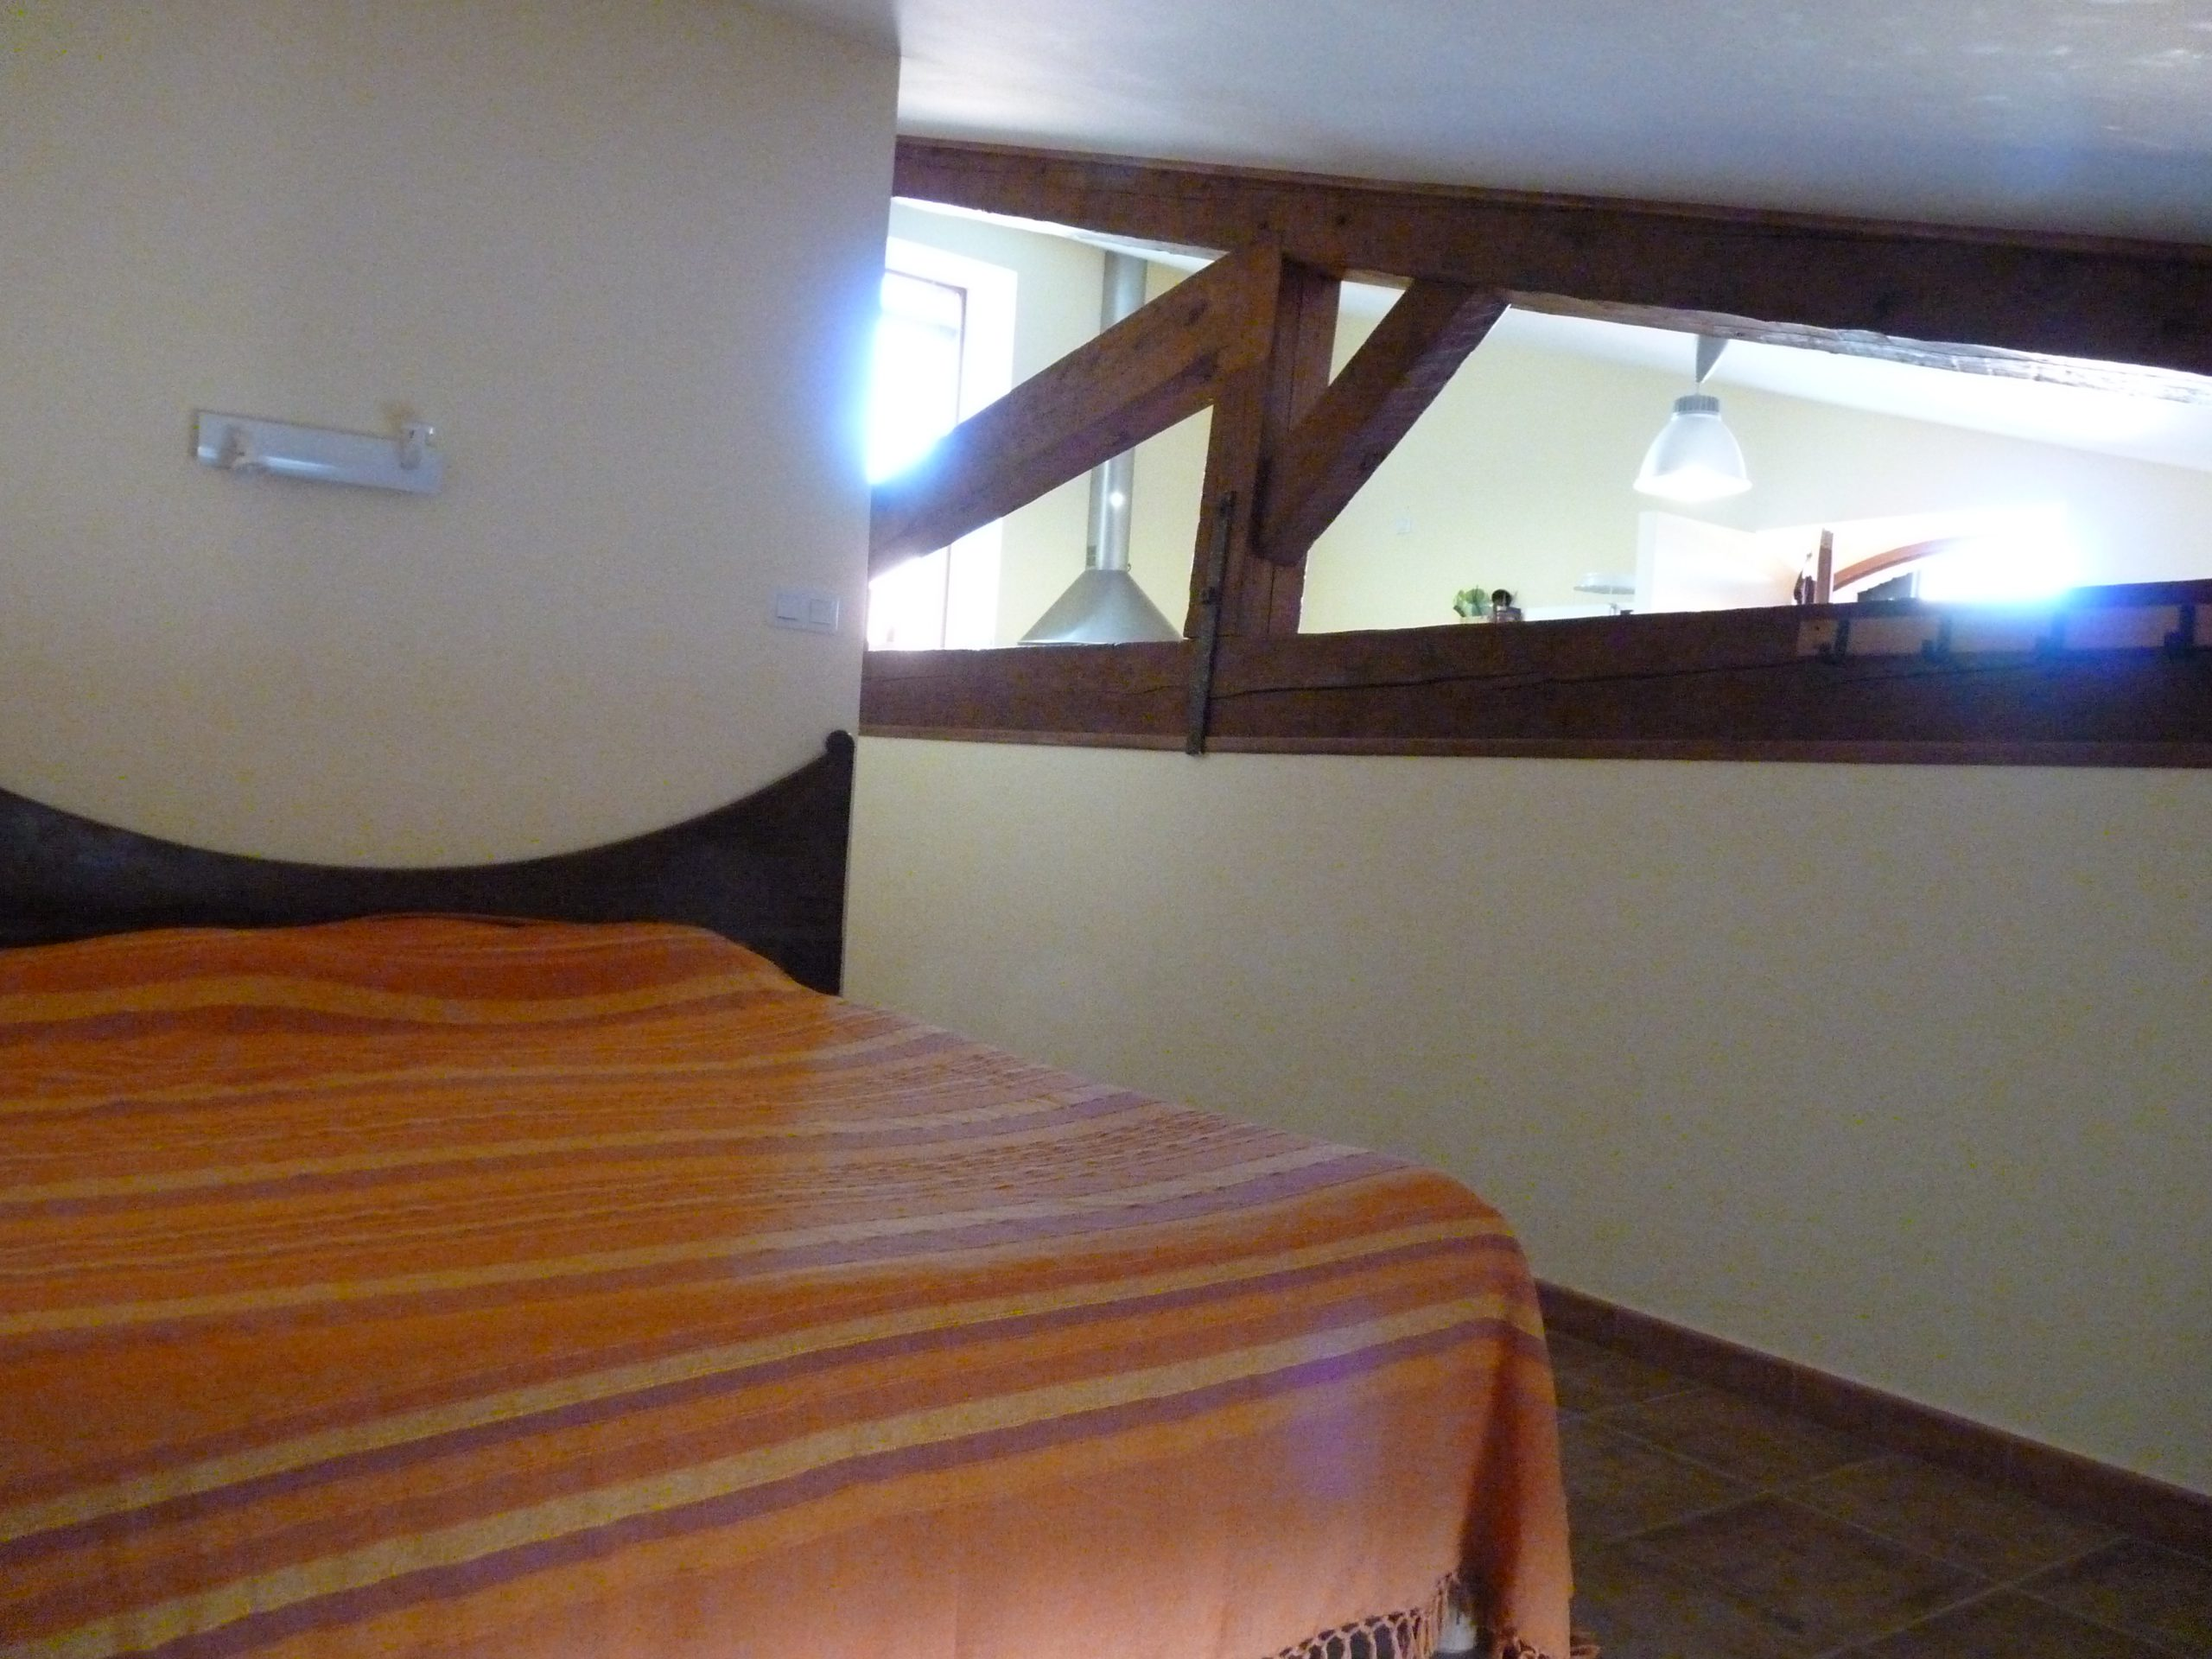 appartement-studio-location-domaine-valcros-paulilles-port-vendres-chambres-hotes-domaine-valcros-banyuls-collioure-5